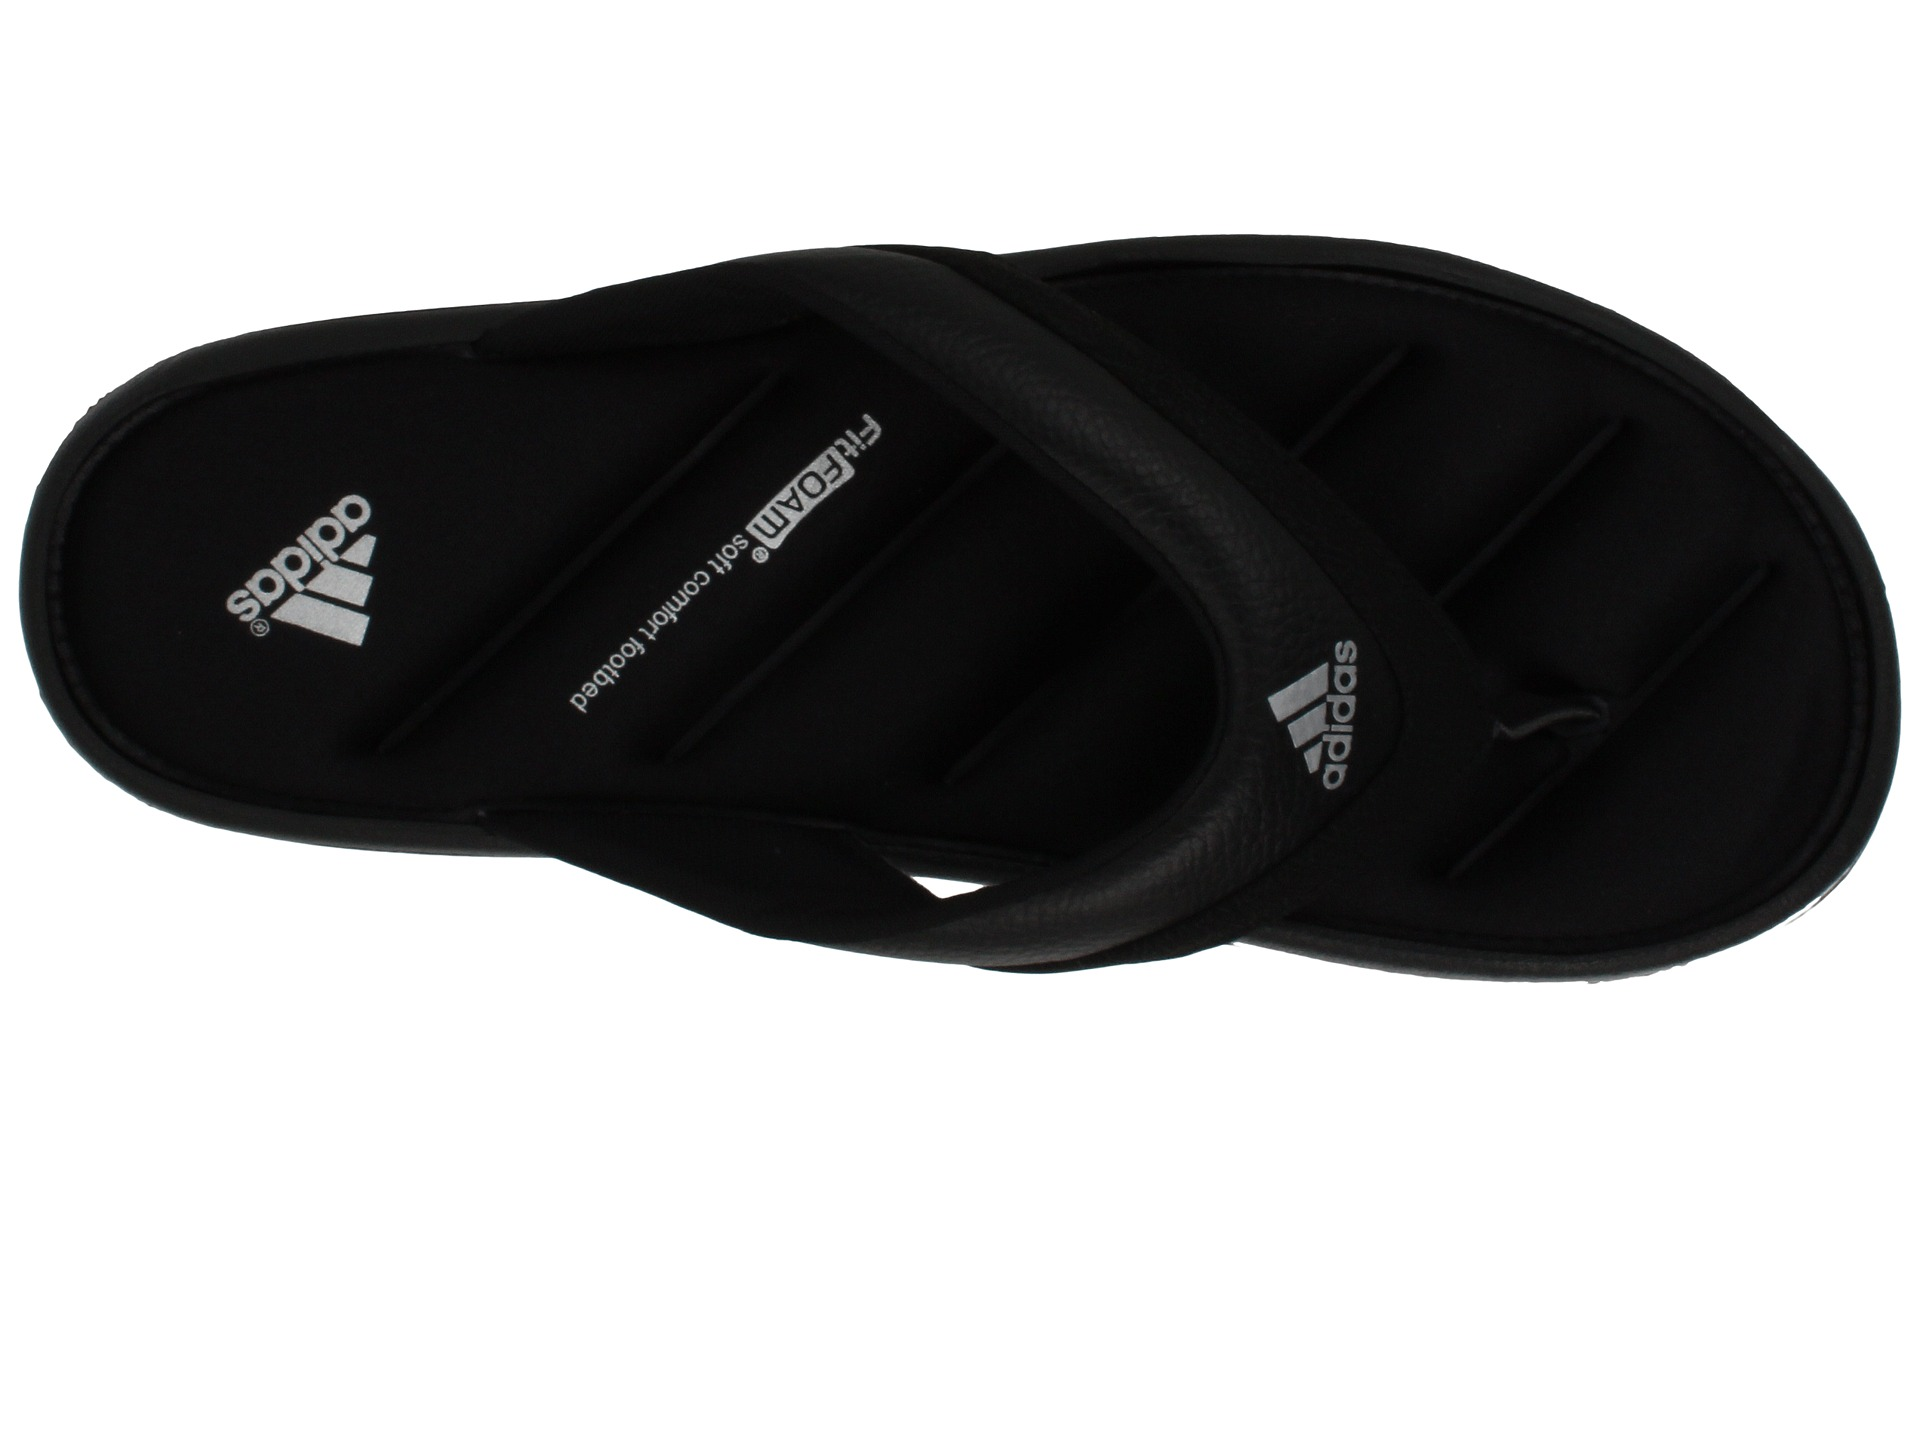 b03cf83e5 adidas fit foam sandals on sale   OFF53% Discounted